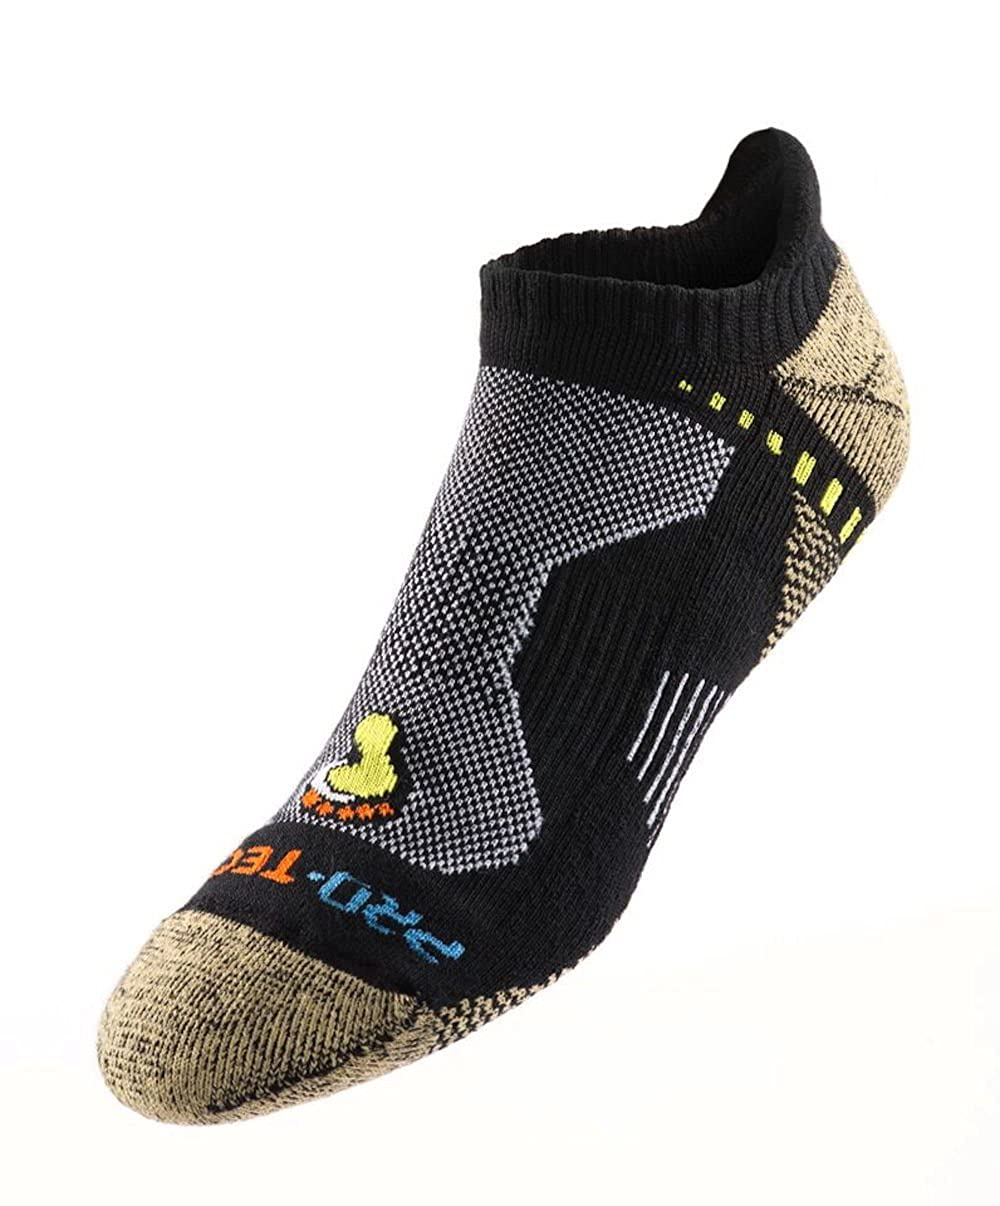 ProTect Men/'s Extreme Fitness Ultra No Show Socks 2-Pack With Heel Tab